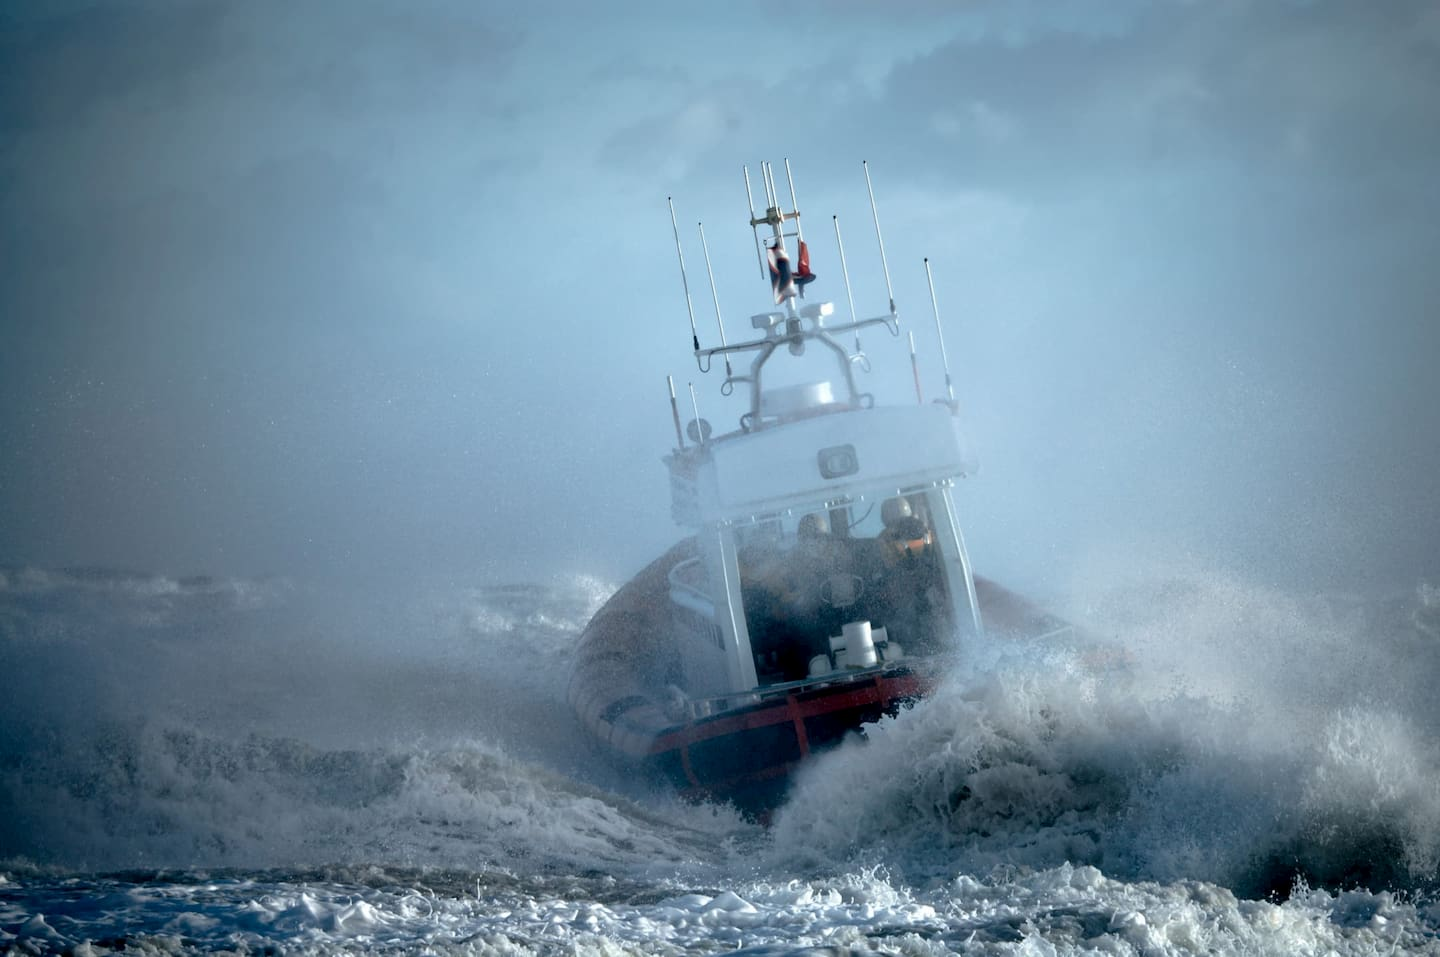 Global Maritime Distress and Safety Service